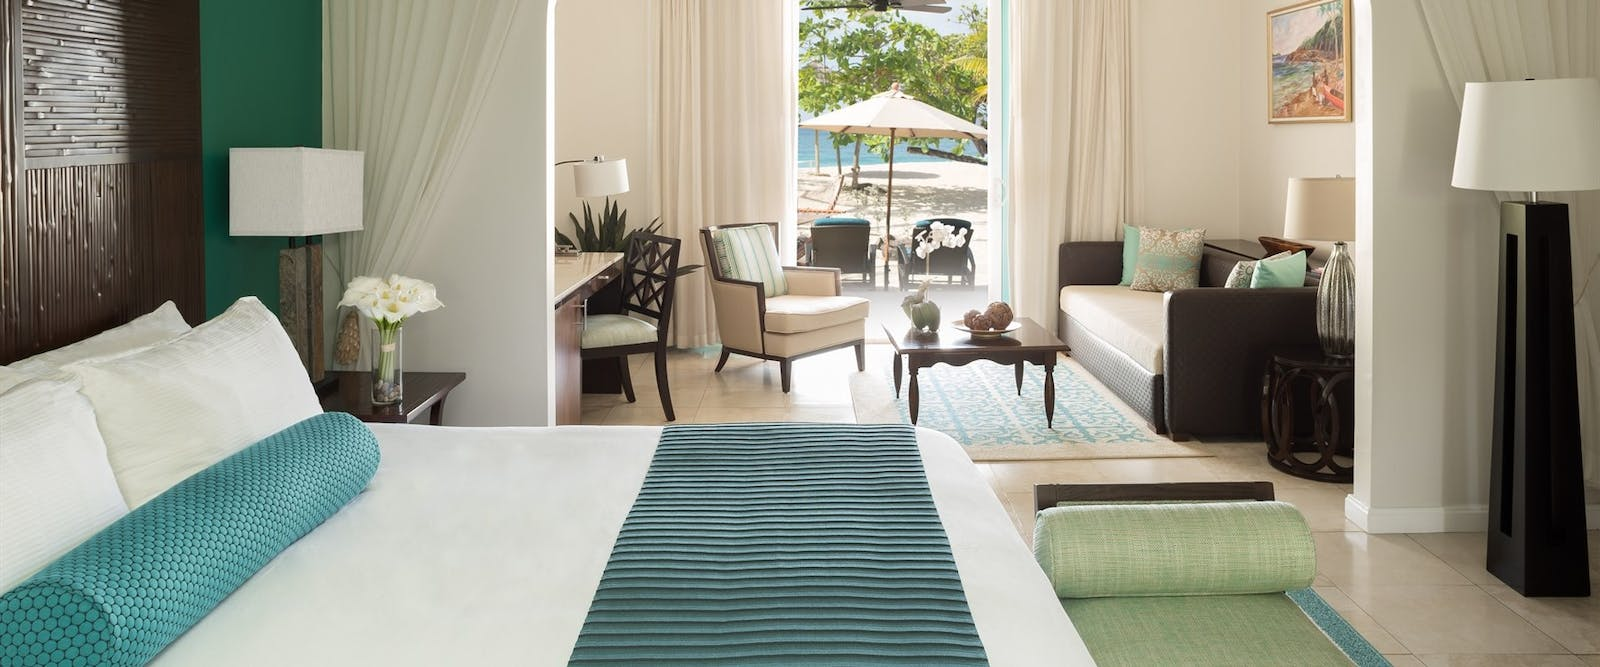 Accommodation at Spice Island Beach Resort, Grenada